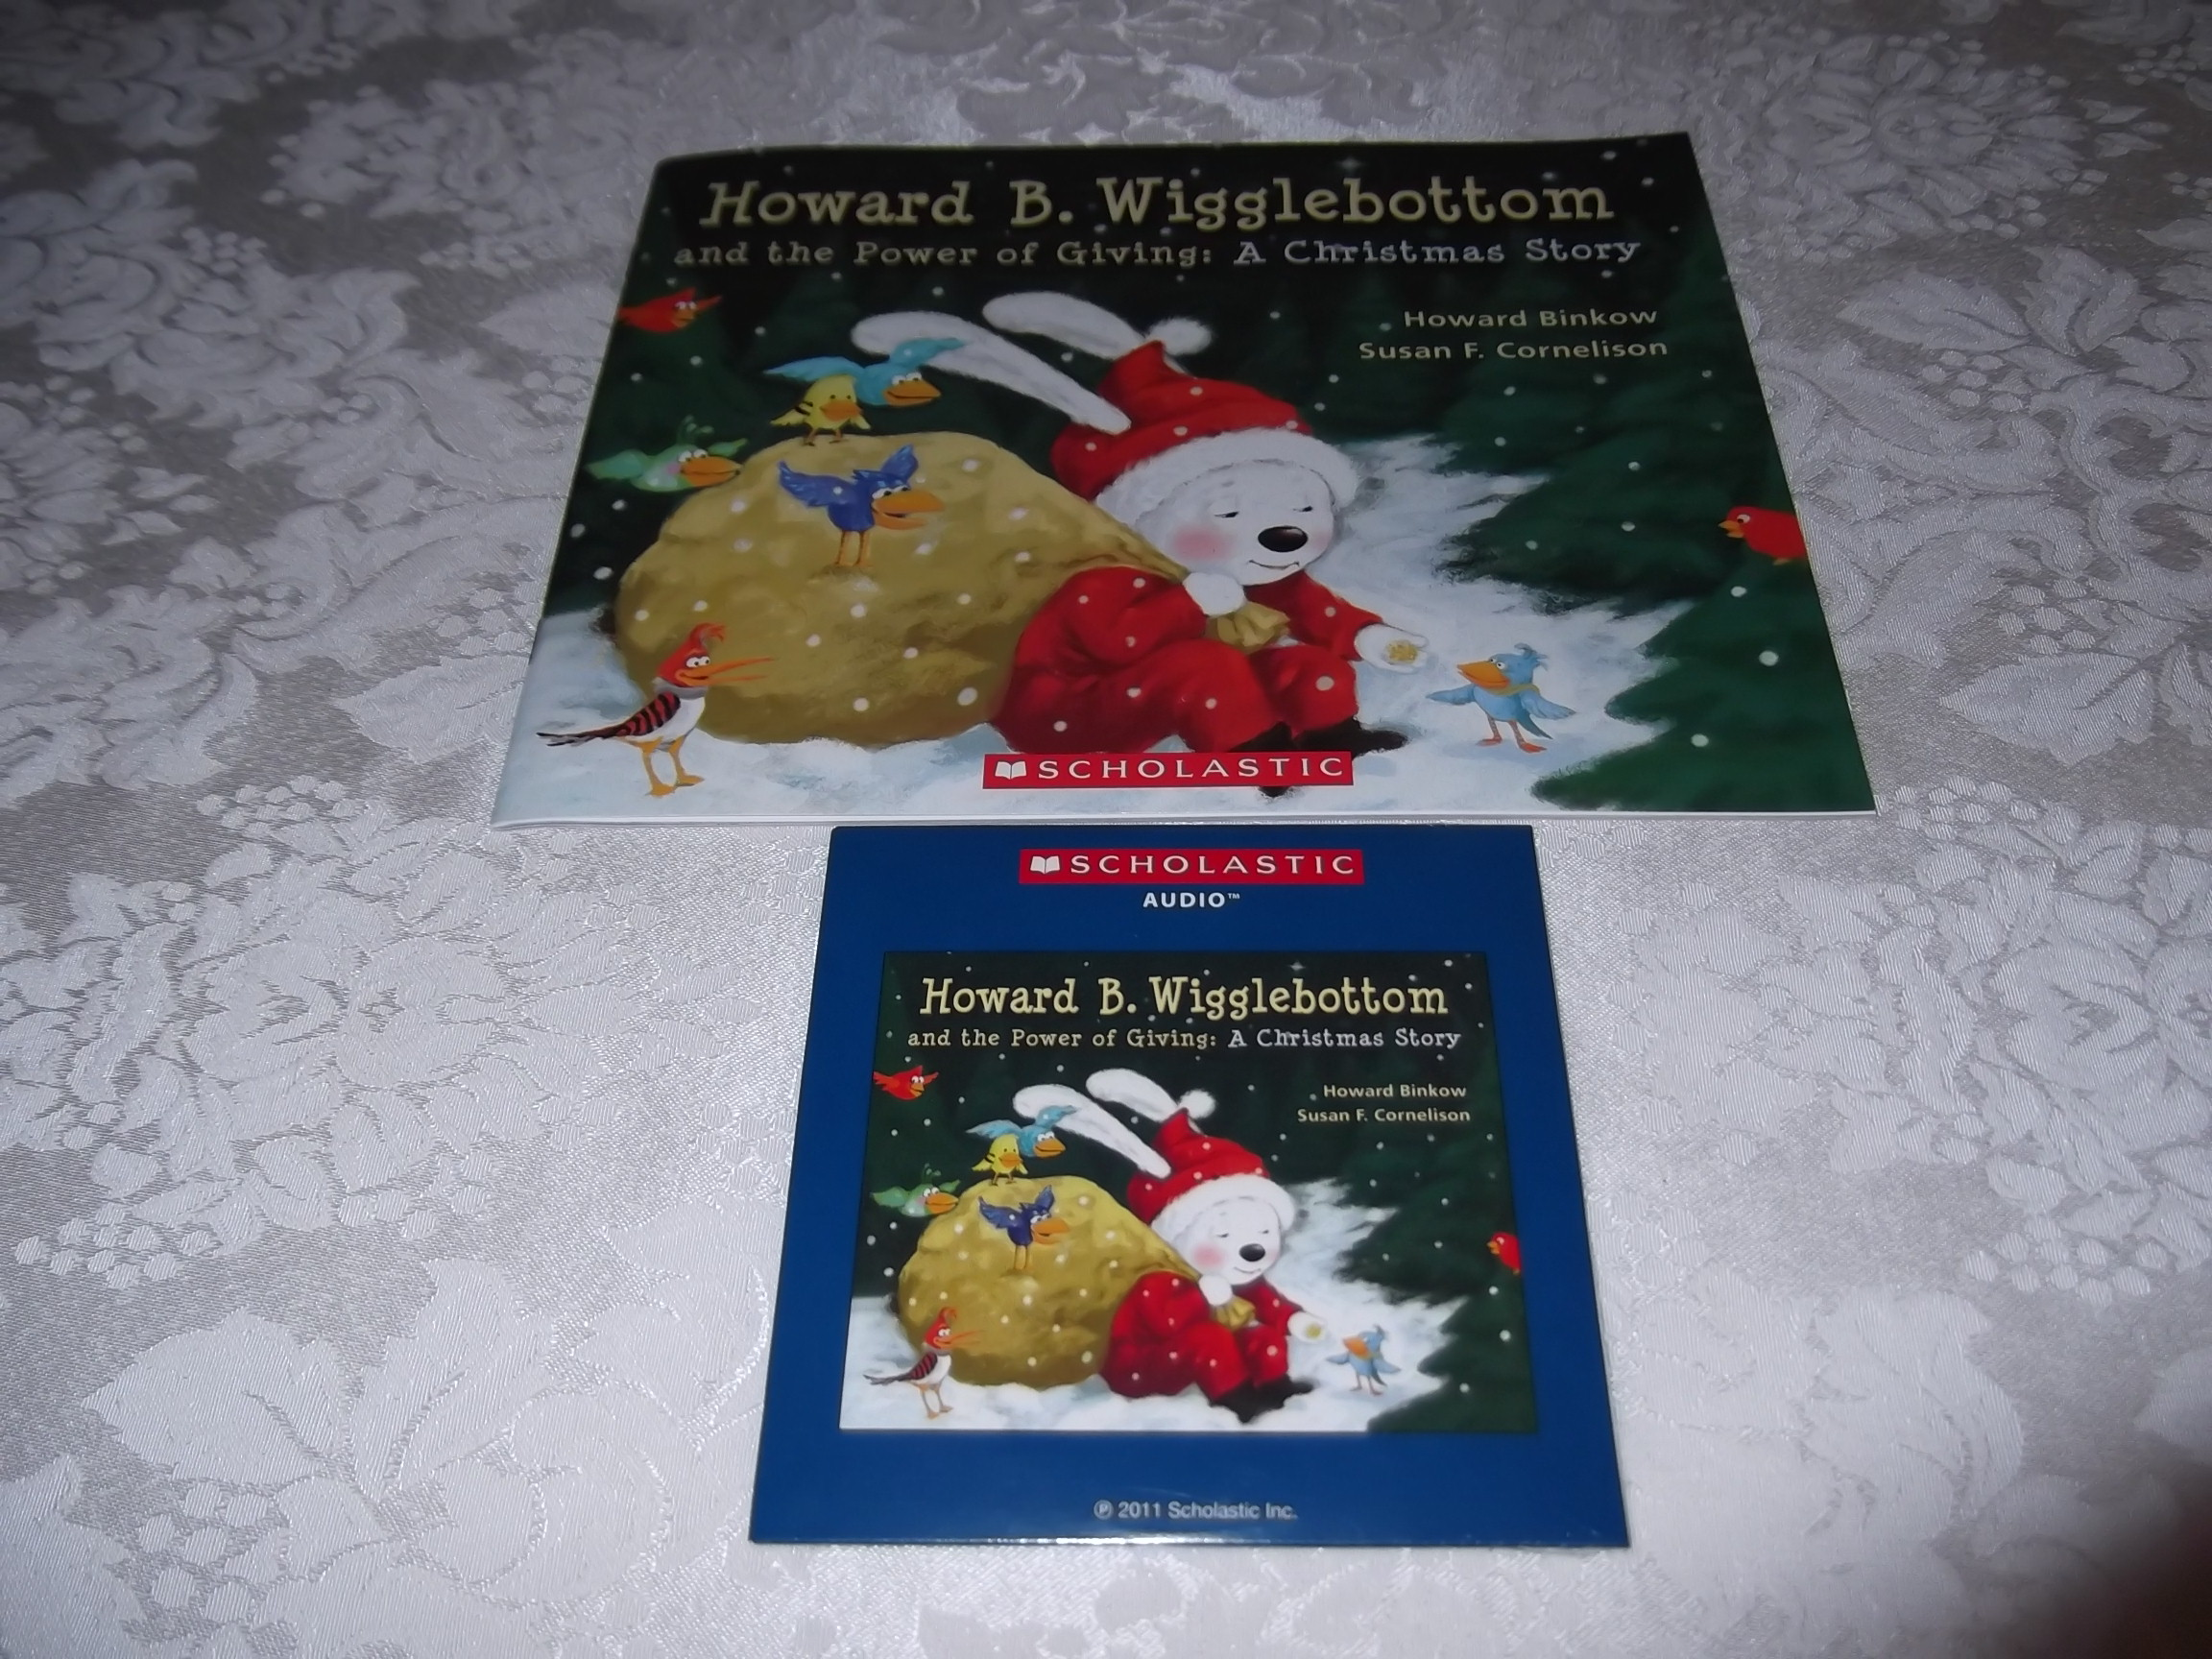 Howard B. Wigglebottom and the Power of Giving: A Christmas Story Audio CD & SC